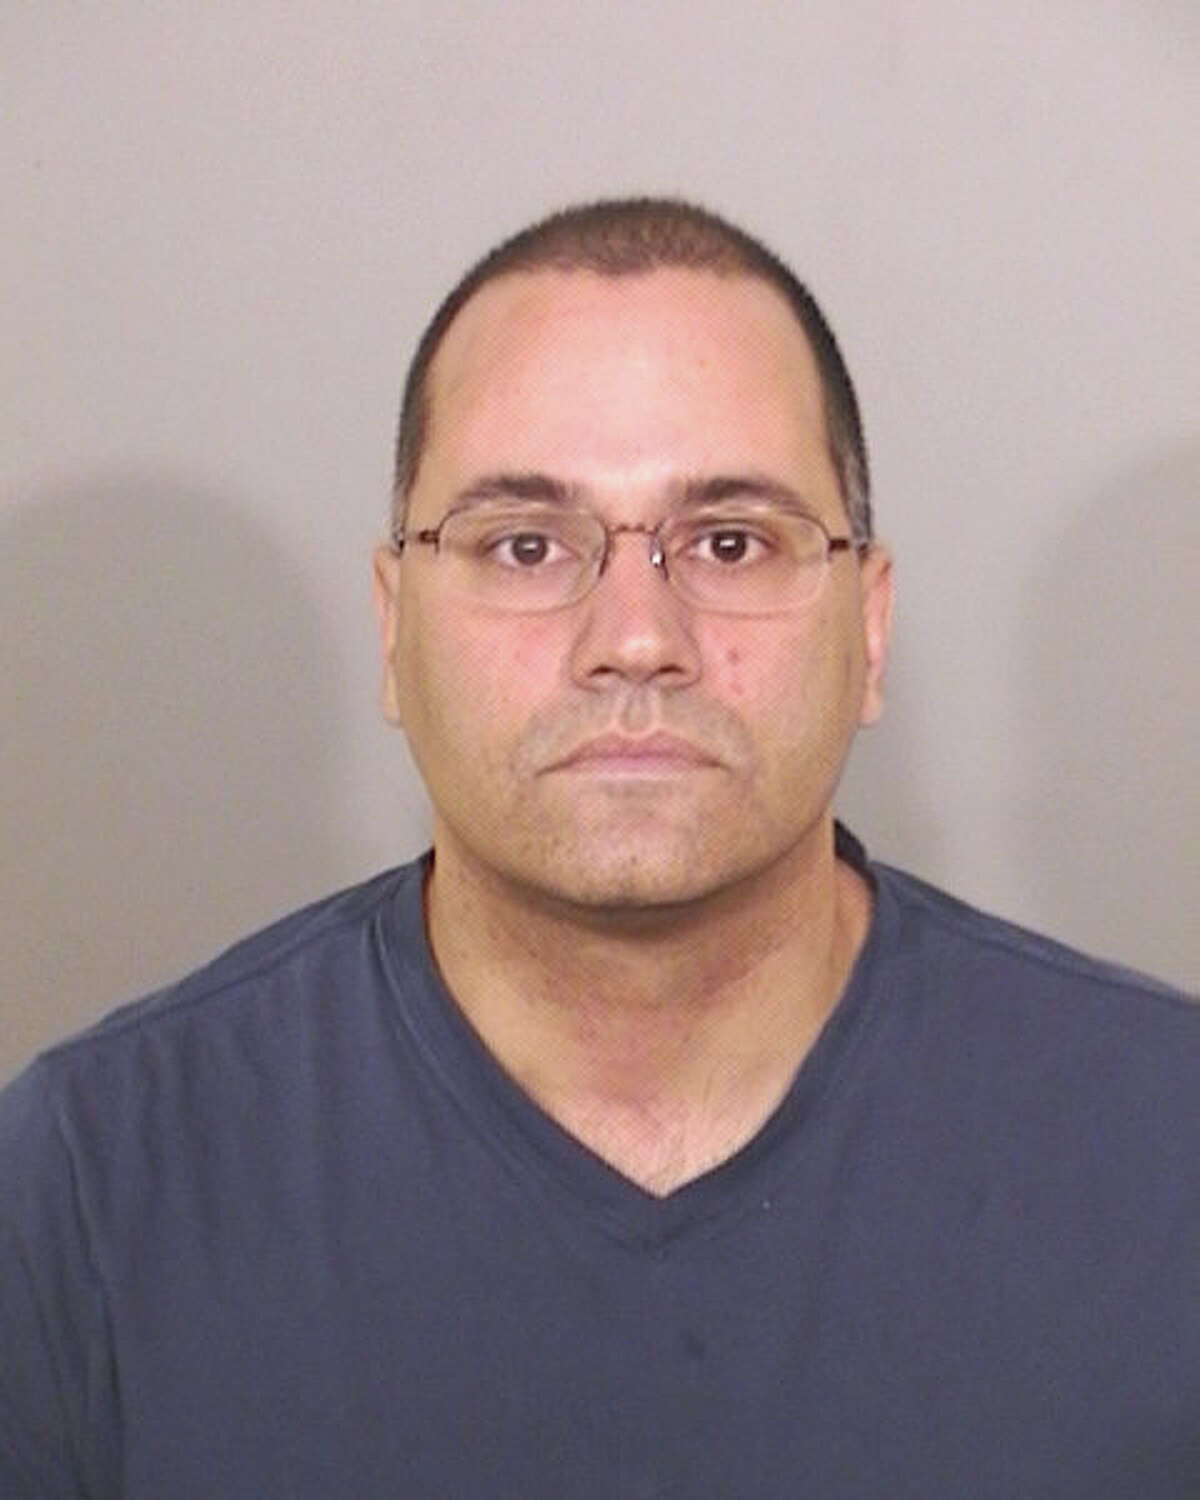 Police on Monday, Feb. 27, 2012, arrested Robert Catalano, the owner of a piano studio, on charges he sexually abused a minor.